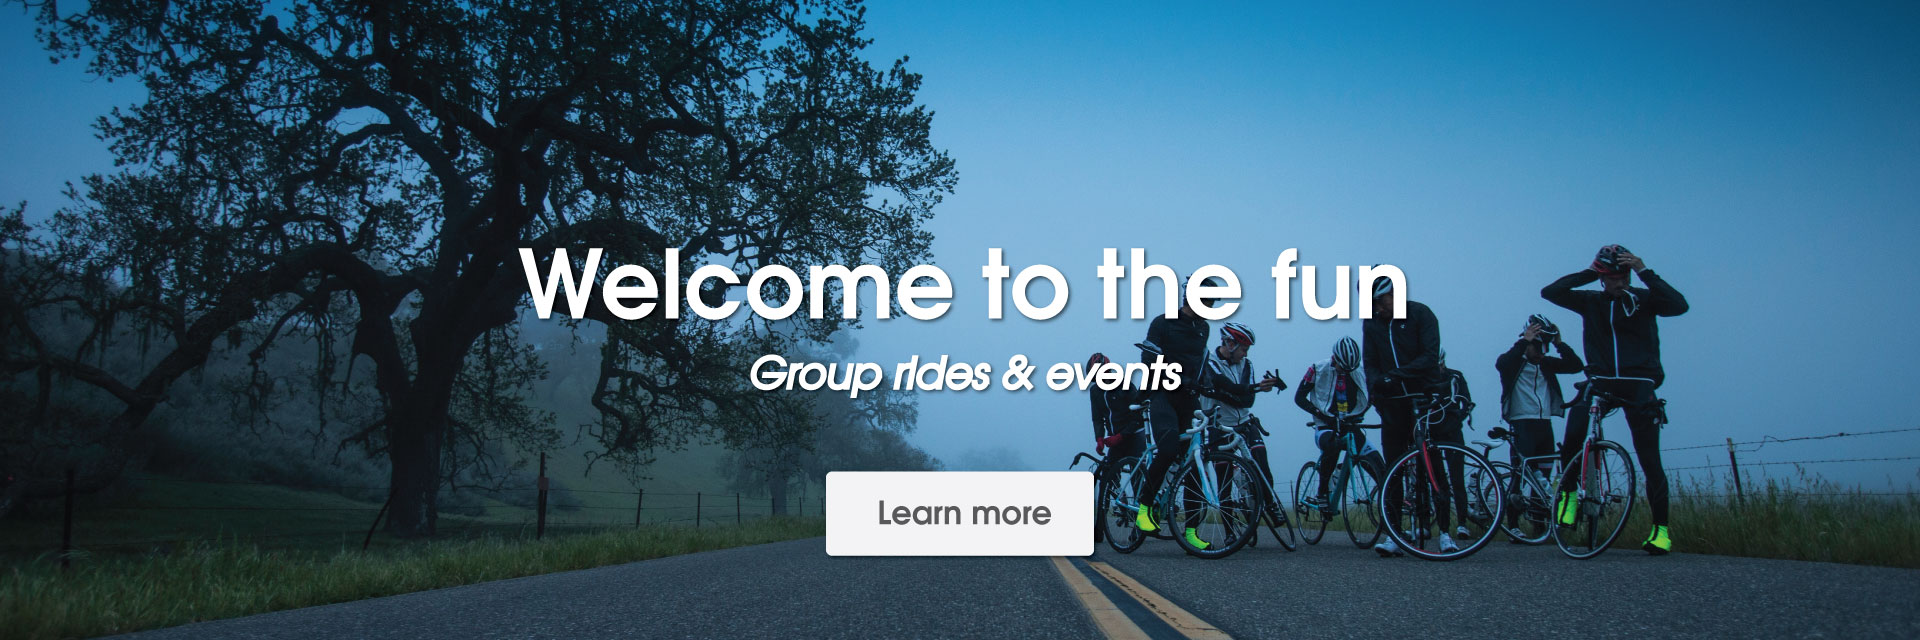 Group rides and events - Atlanta Bike Shop